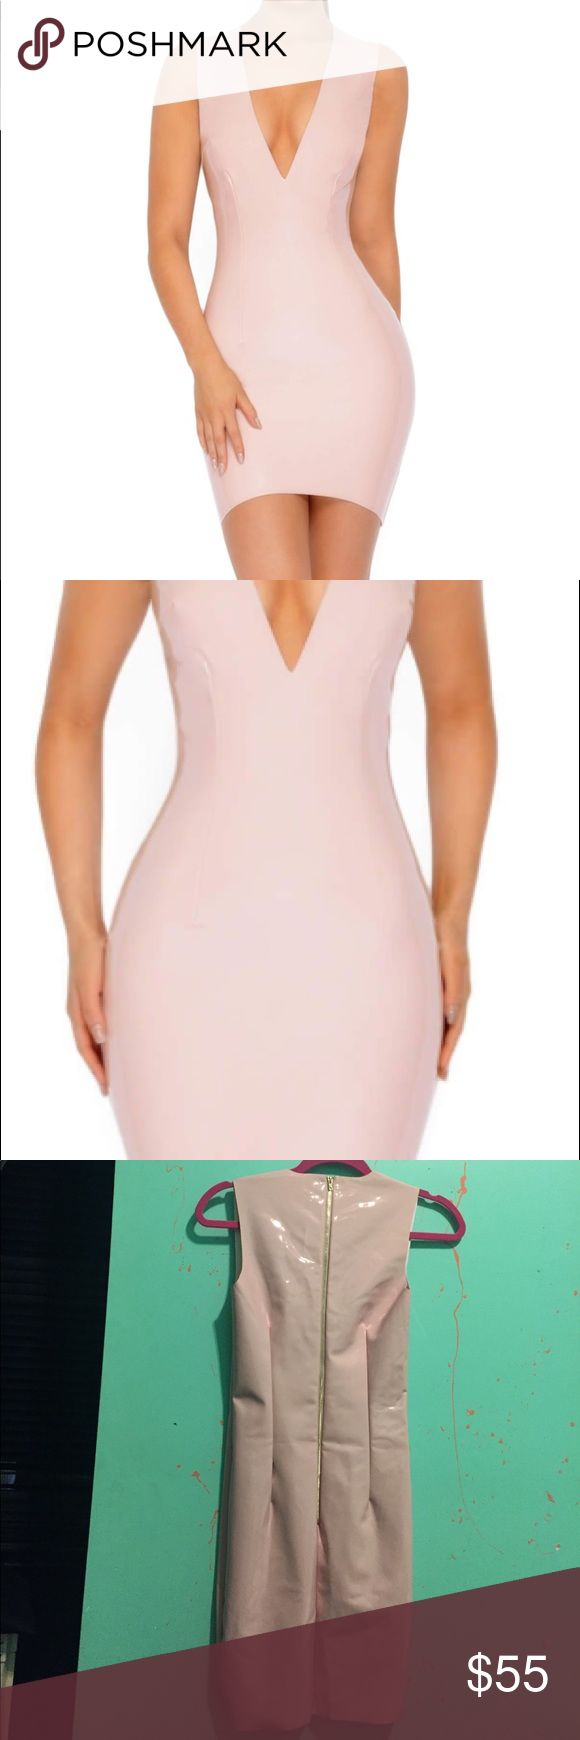 New NEVER WORN Oh Polly Trust in V Vinyl Mini Premium vinyl piece, fashioned with latex-like fabric designed to hug the body. Plunging neckline with soft interior lining ultra-short in the Blush colorway. UK Size 8 US Size 4 Oh Polly Dresses Mini